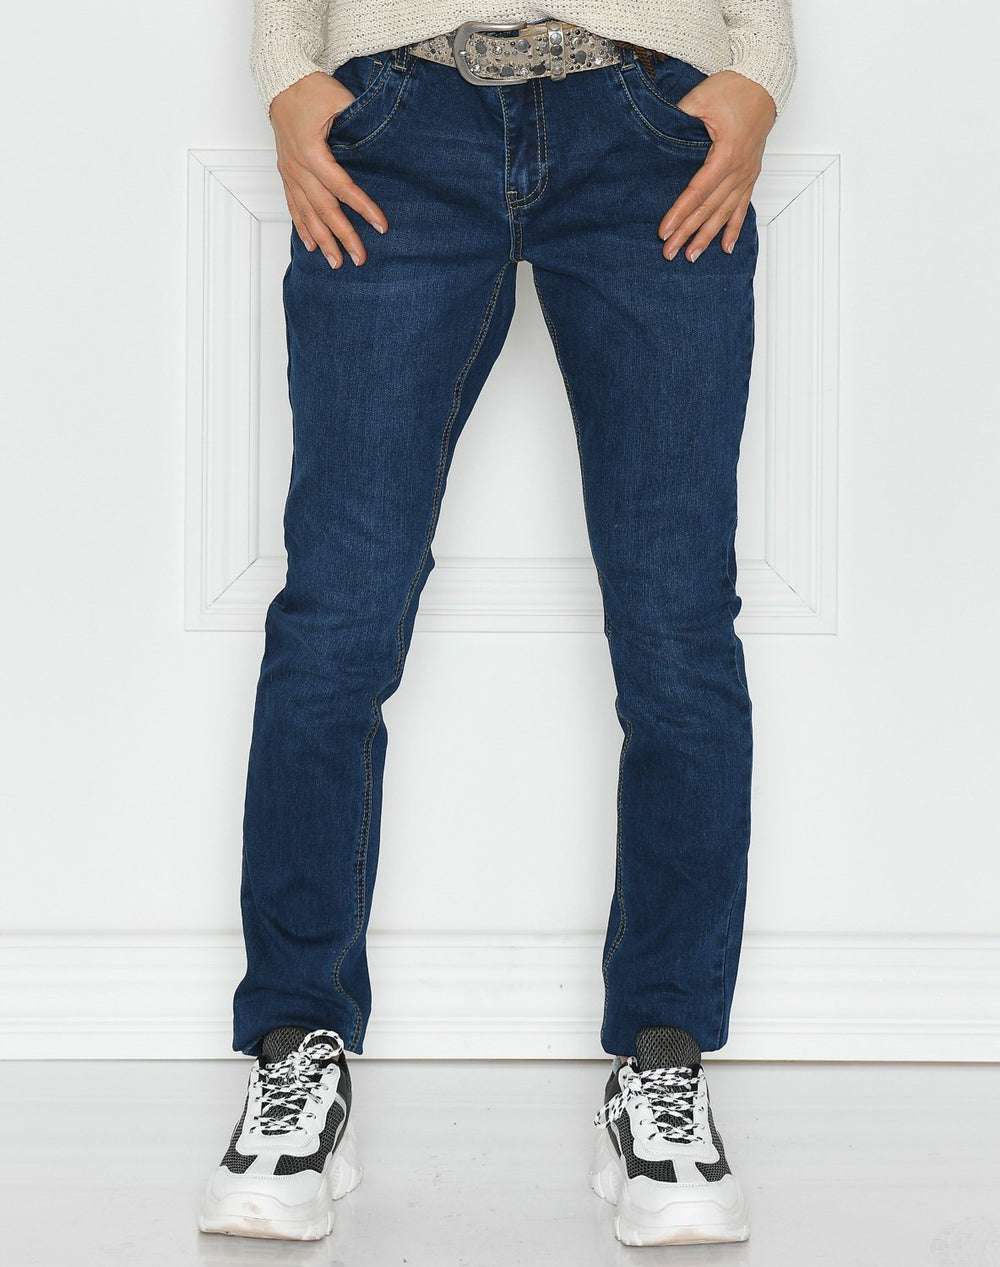 Ofelia Asta jeans dark blue wash - Online-Mode